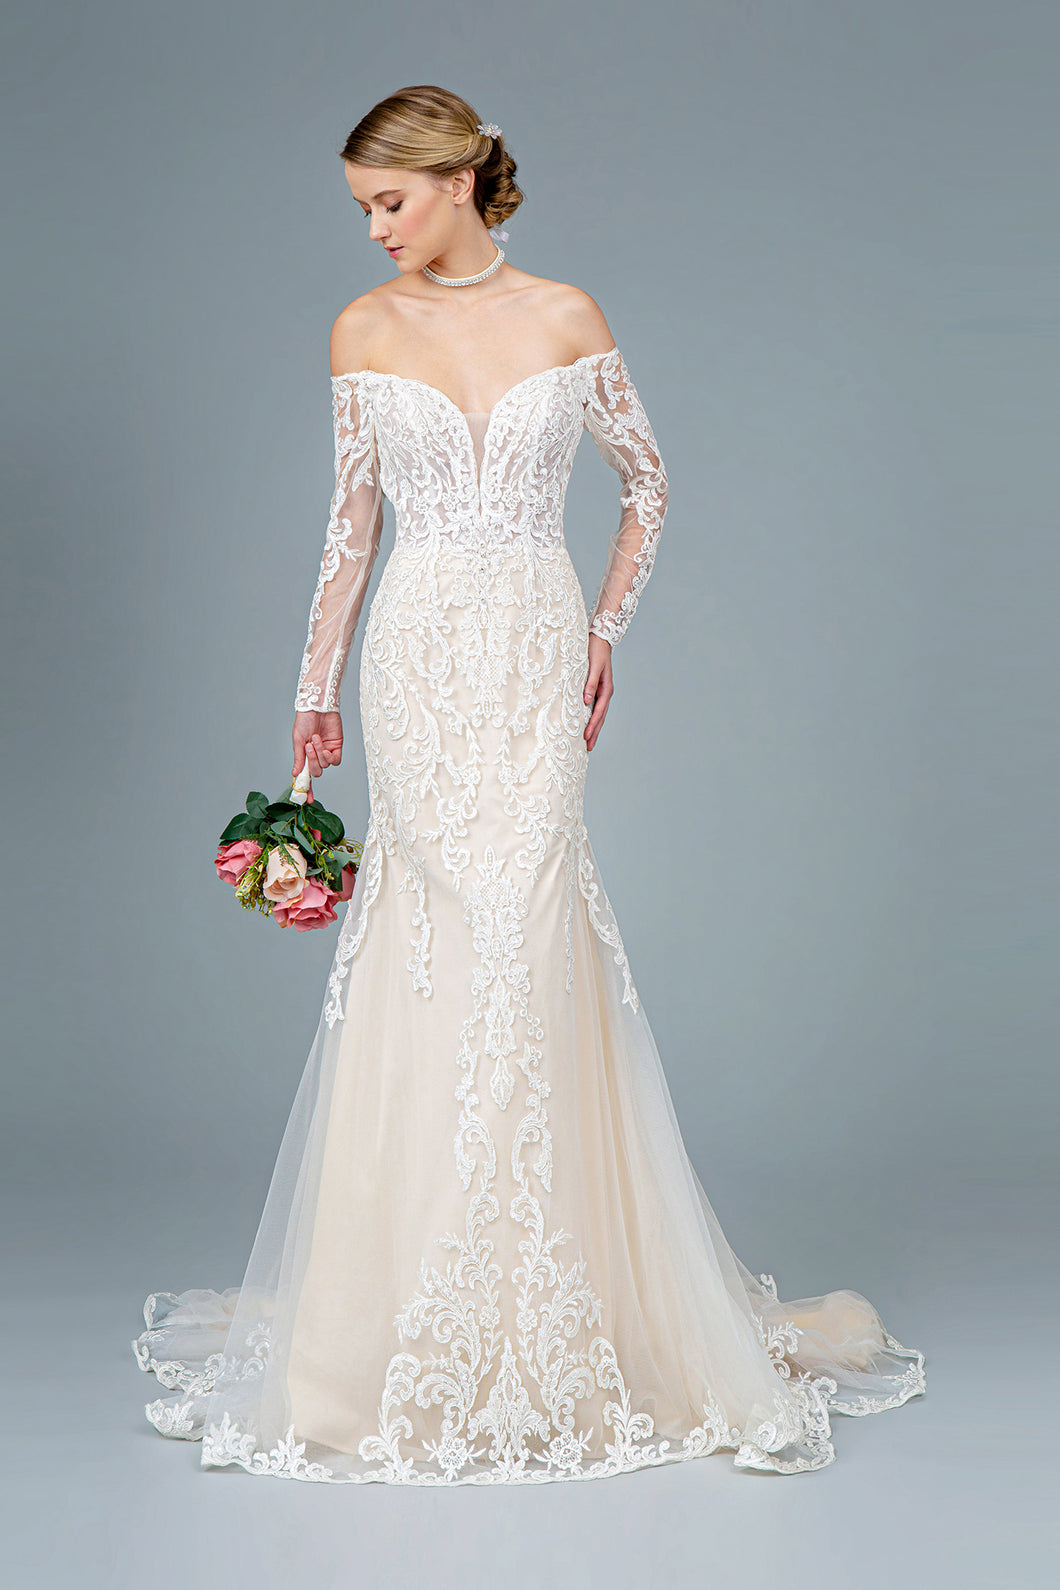 Fleur Wedding Dress Long Sleeve Flared Bridal Gown G1801HXR-Ivory/cream SAMPLE IN STORE